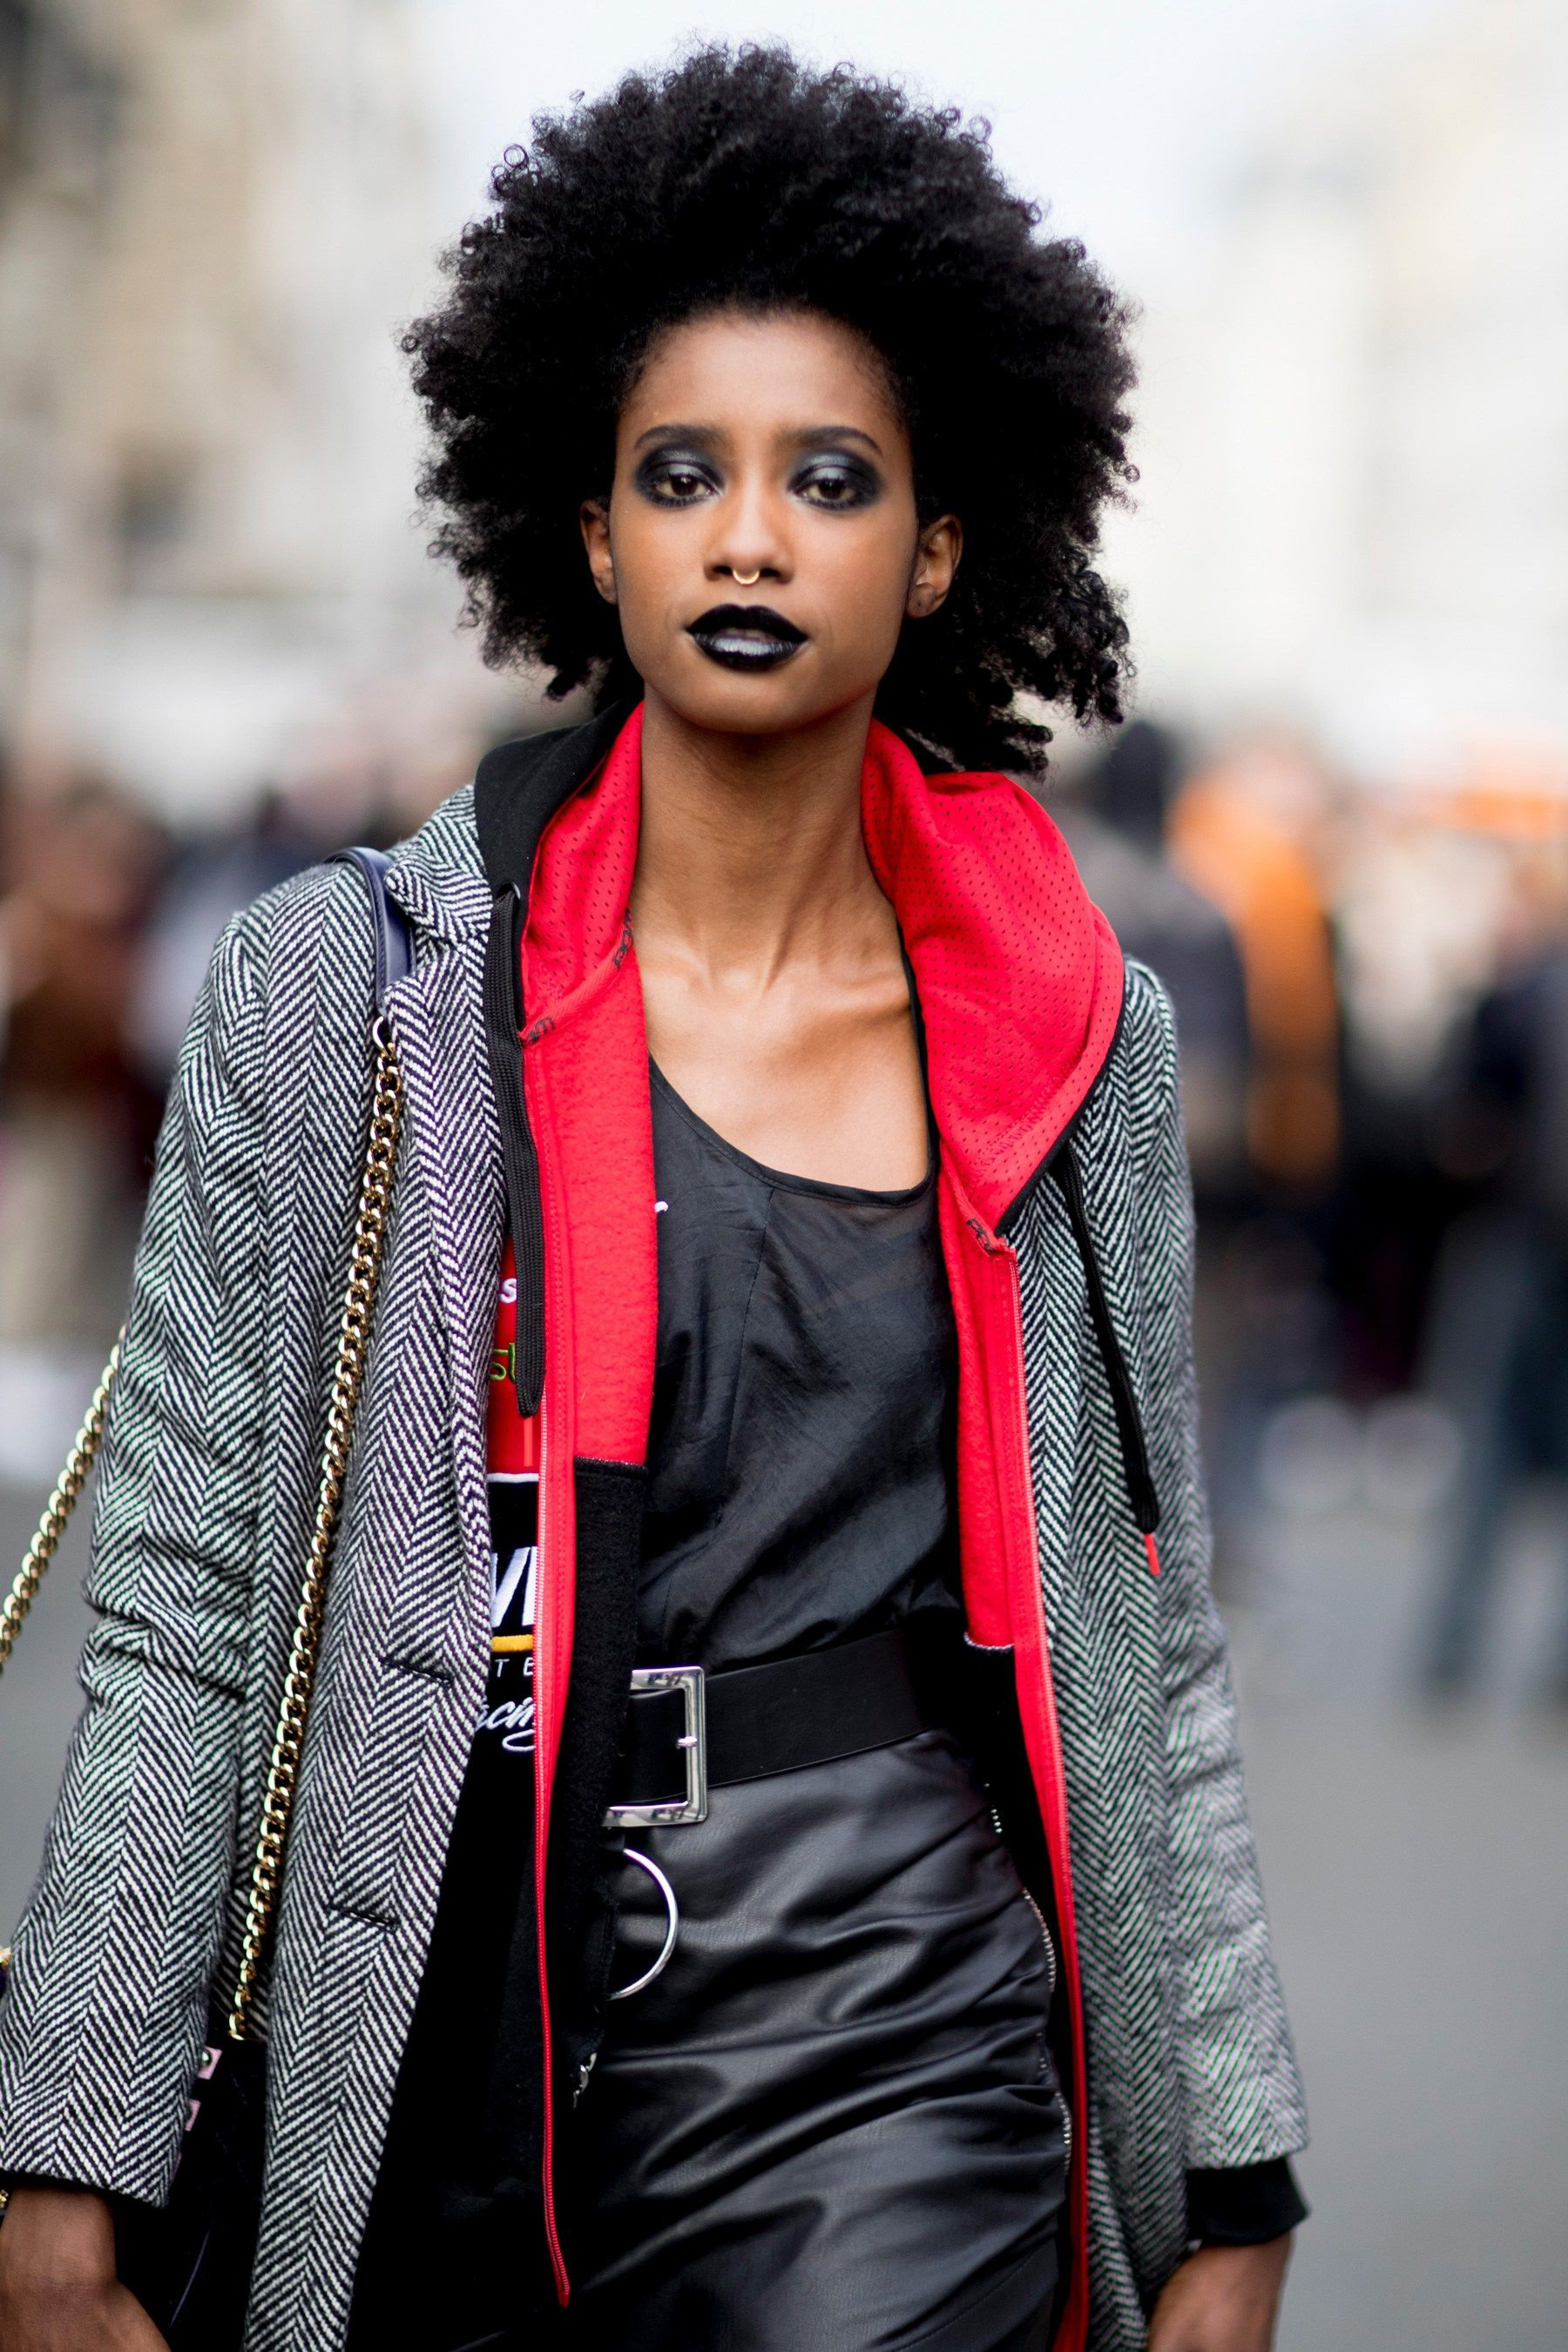 Paris Fashion Week: Bringing Back theAfro